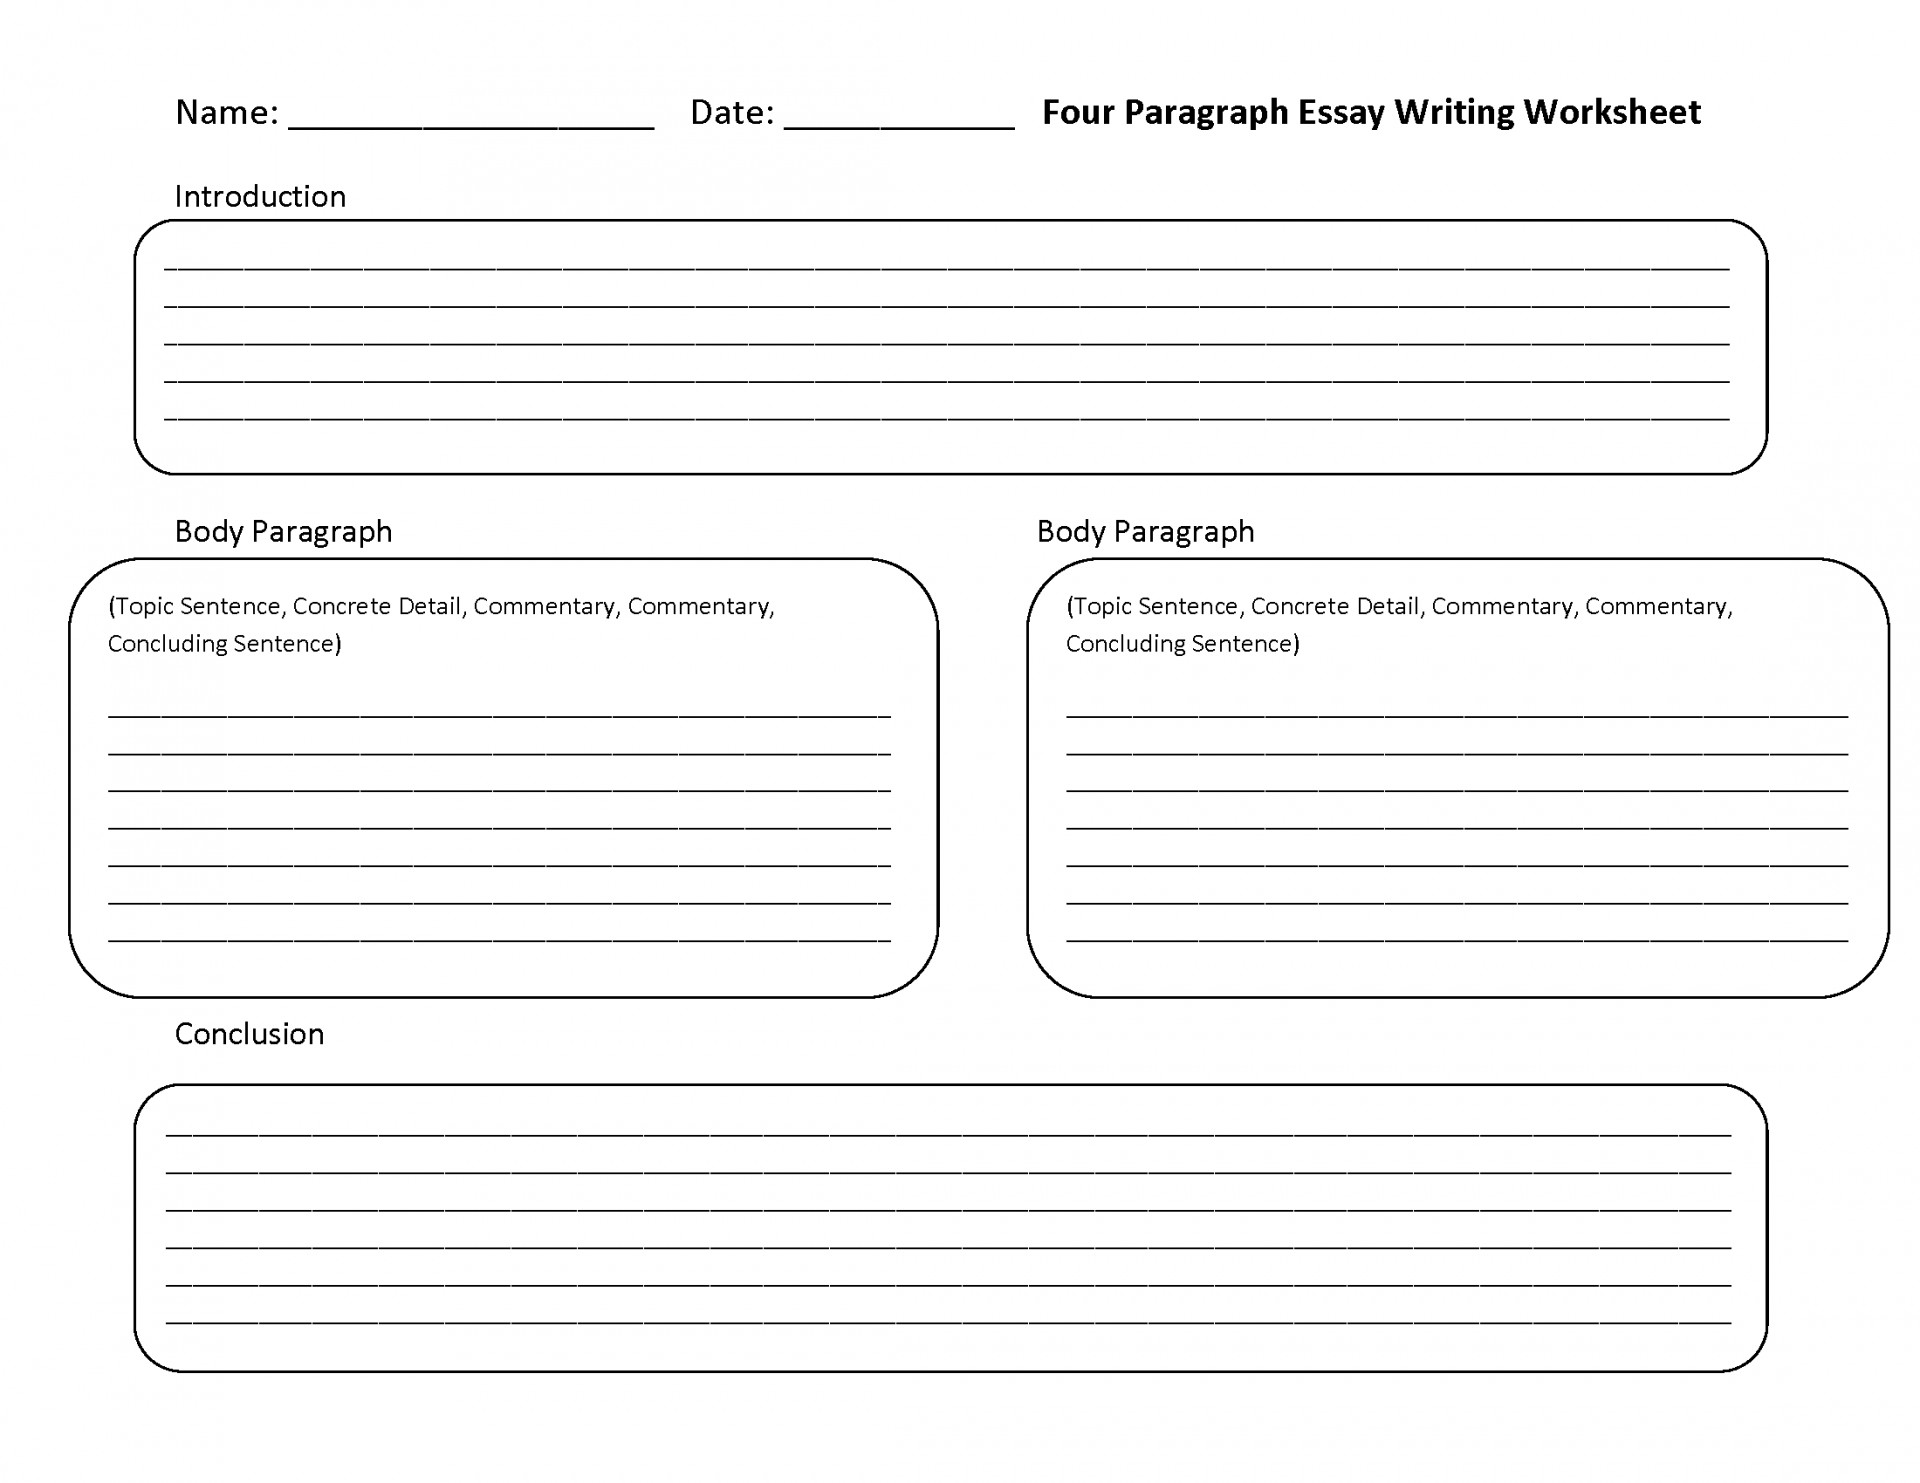 023 Paragraph Essay Writing Prompts Middle School Example Four Incredible 5 1920